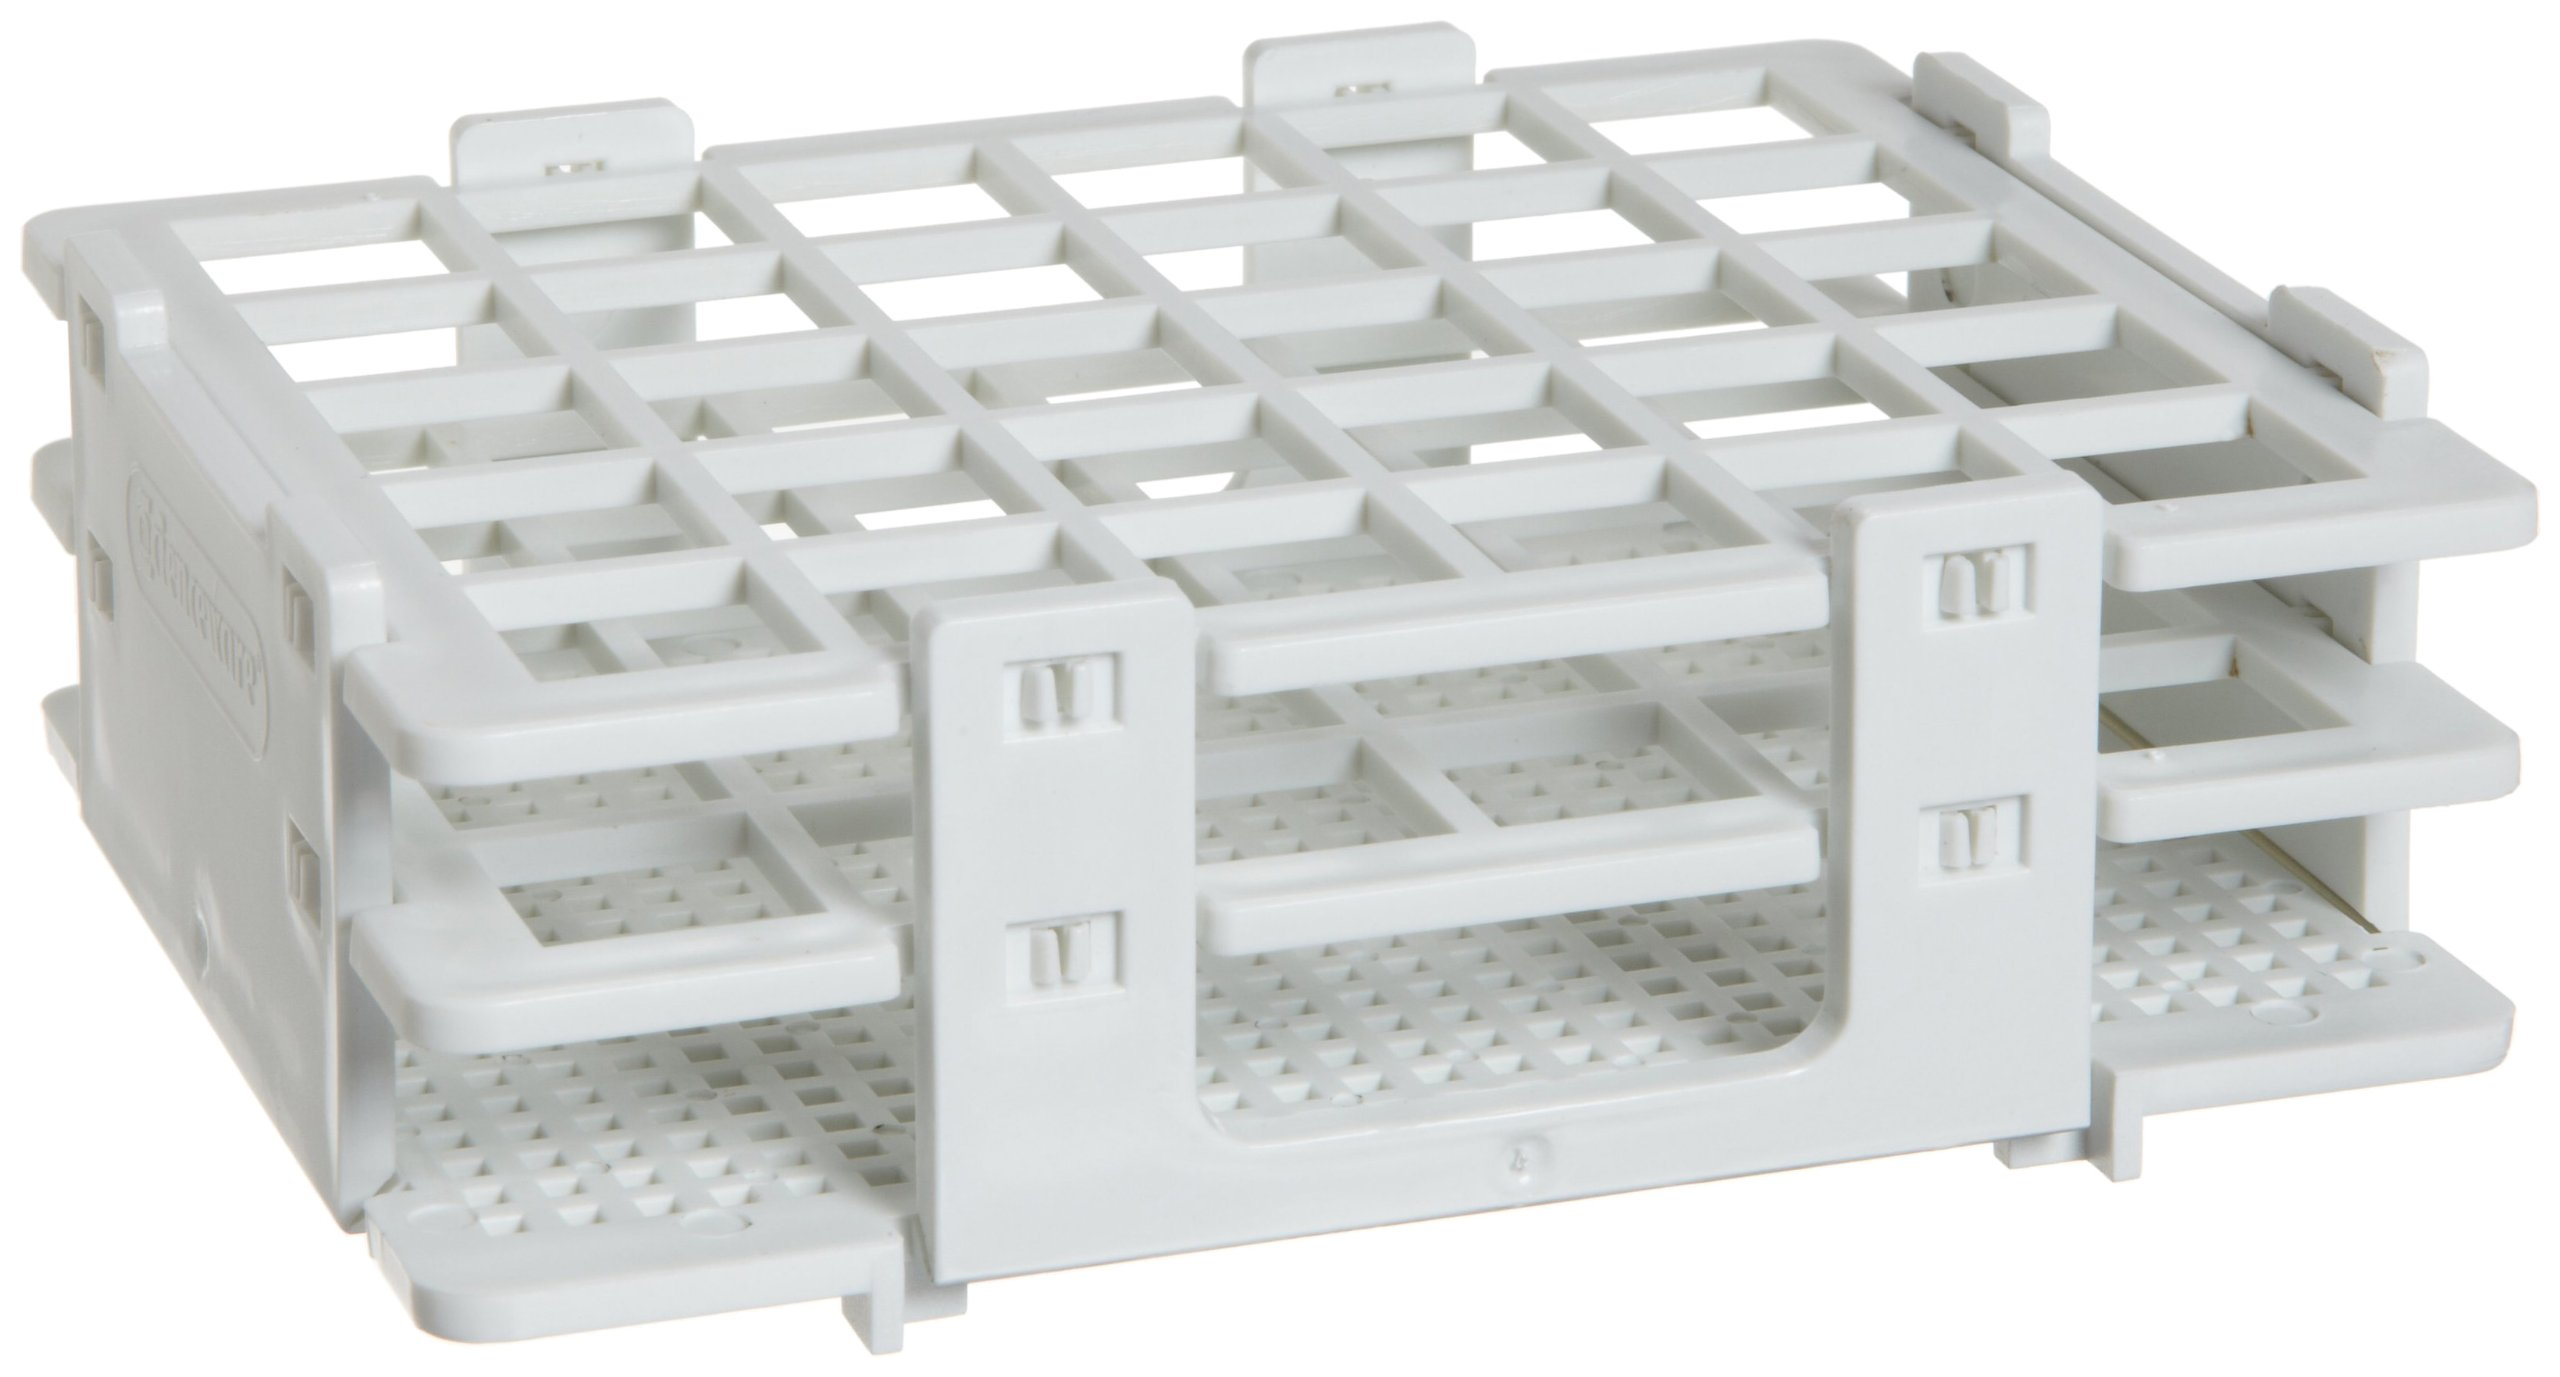 Bel-Art F18514-0016 No-Wire Bottle and Vial Rack; 13-16mm, 30 Places, 5.08 x 4.15 x 1.70 in., Polypropylene